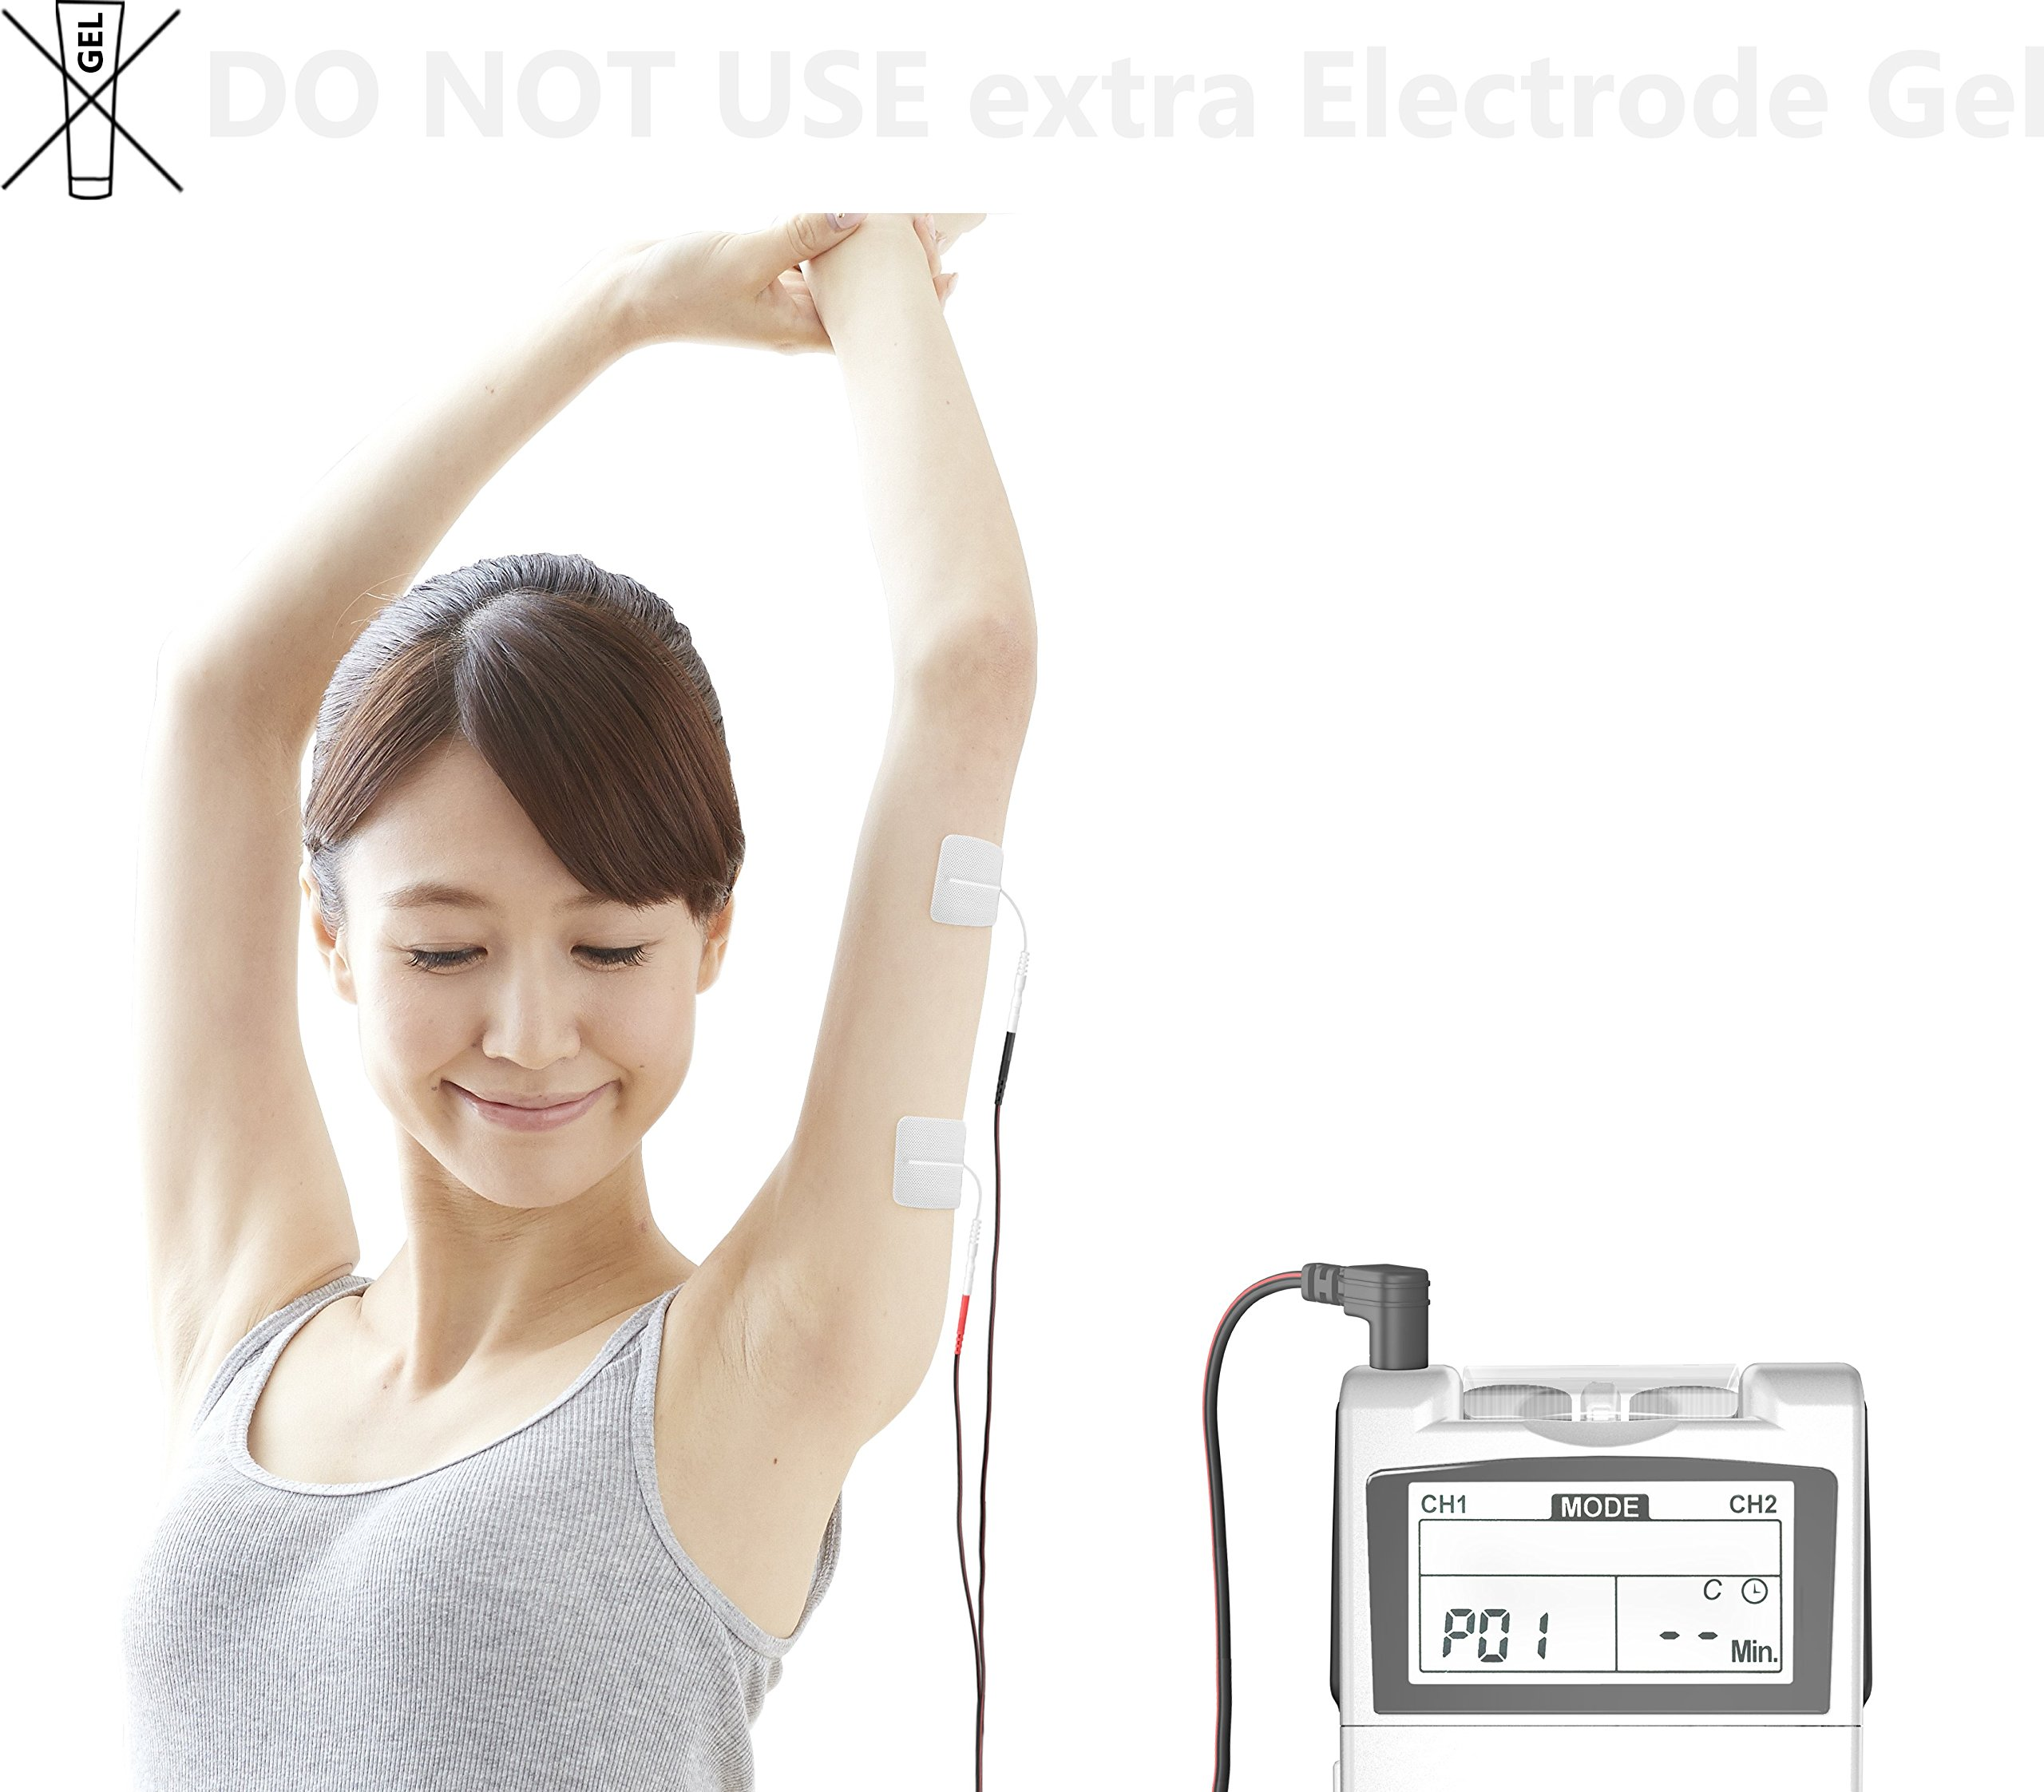 FDA Cleared TENS Unit iStim EV-820 TENS Machine for Pain Management, Back Pain and Rehabilitation by iSTIM (Image #5)